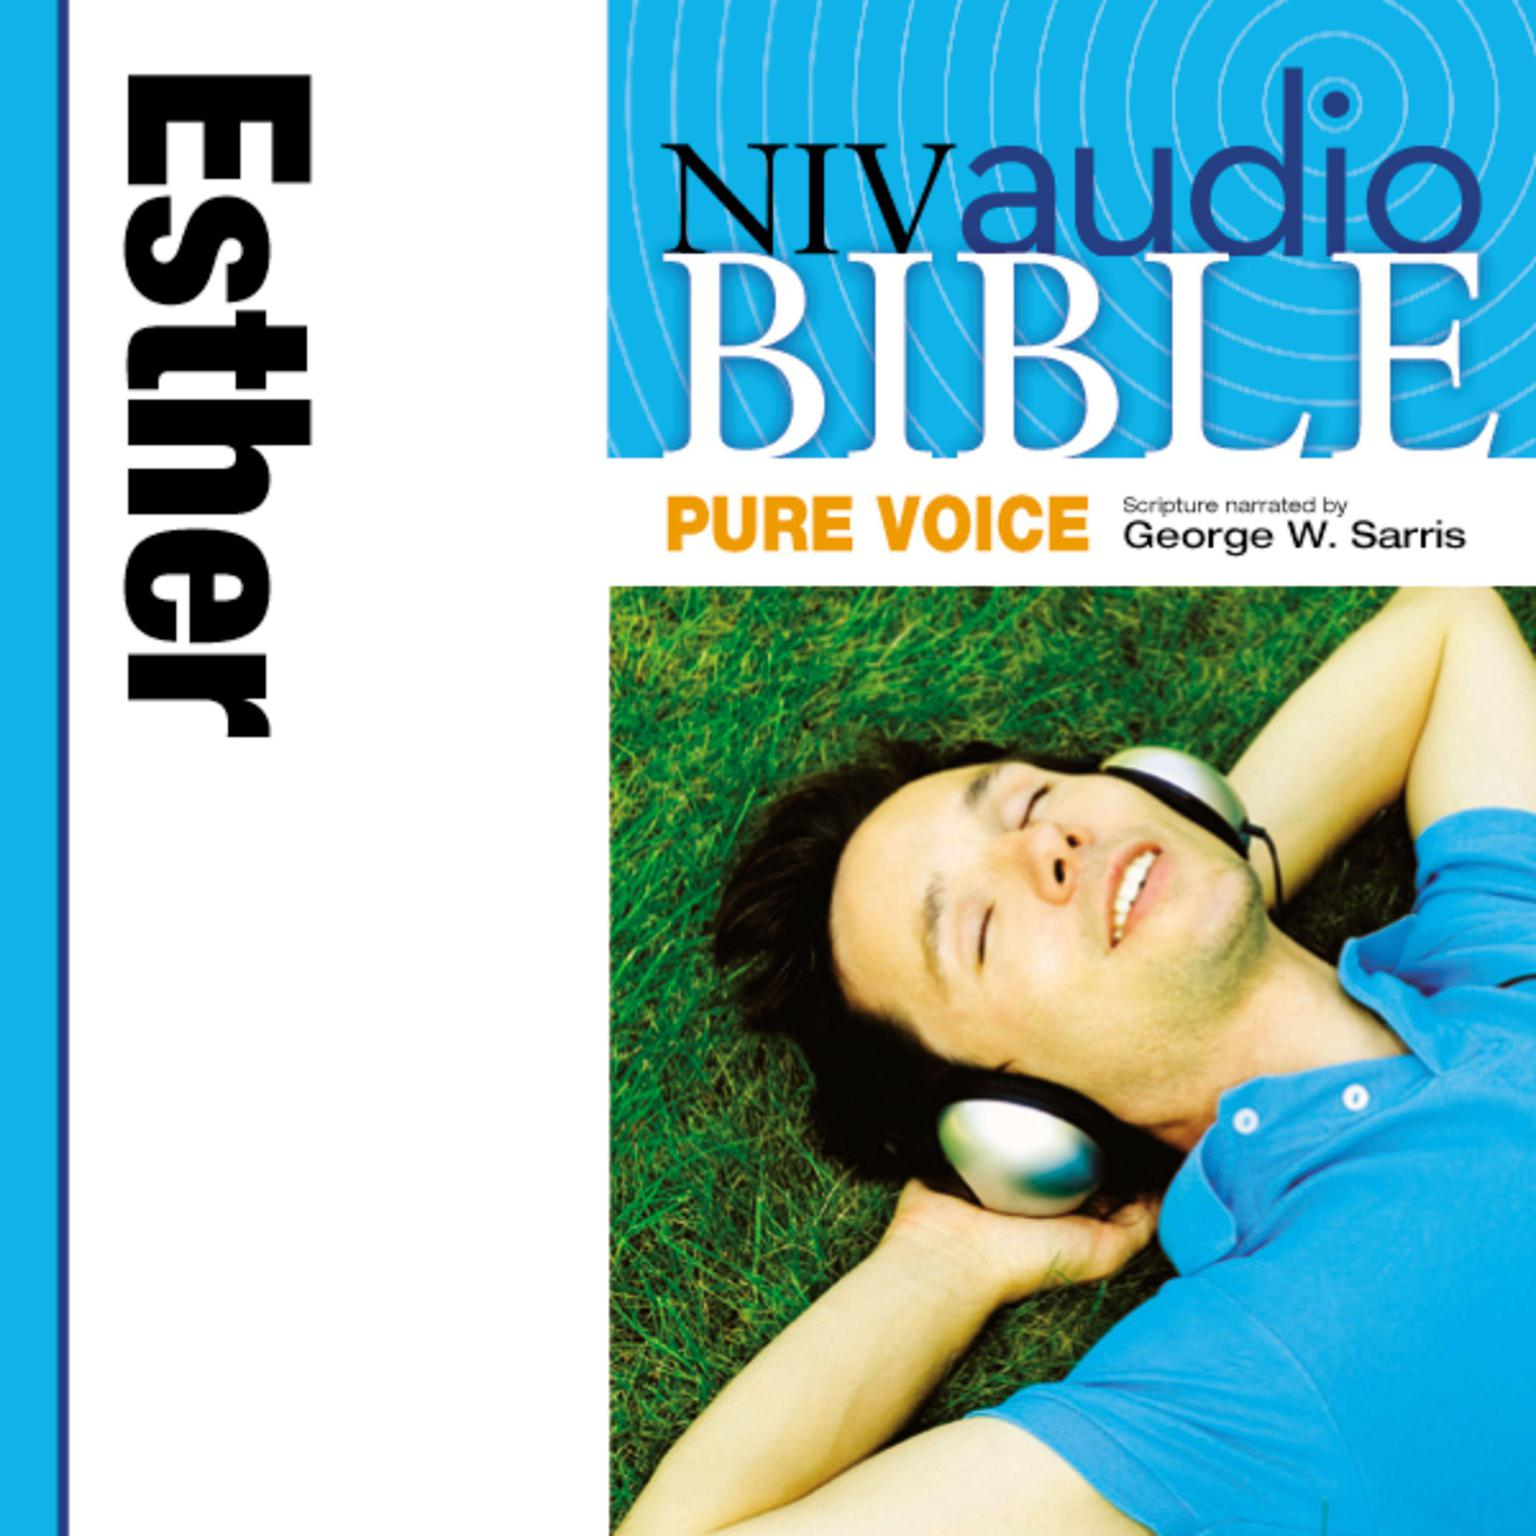 Printable NIV, Audio Bible, Pure Voice: Esther, Audio Download (Narrated by George W. Sarris) Audiobook Cover Art